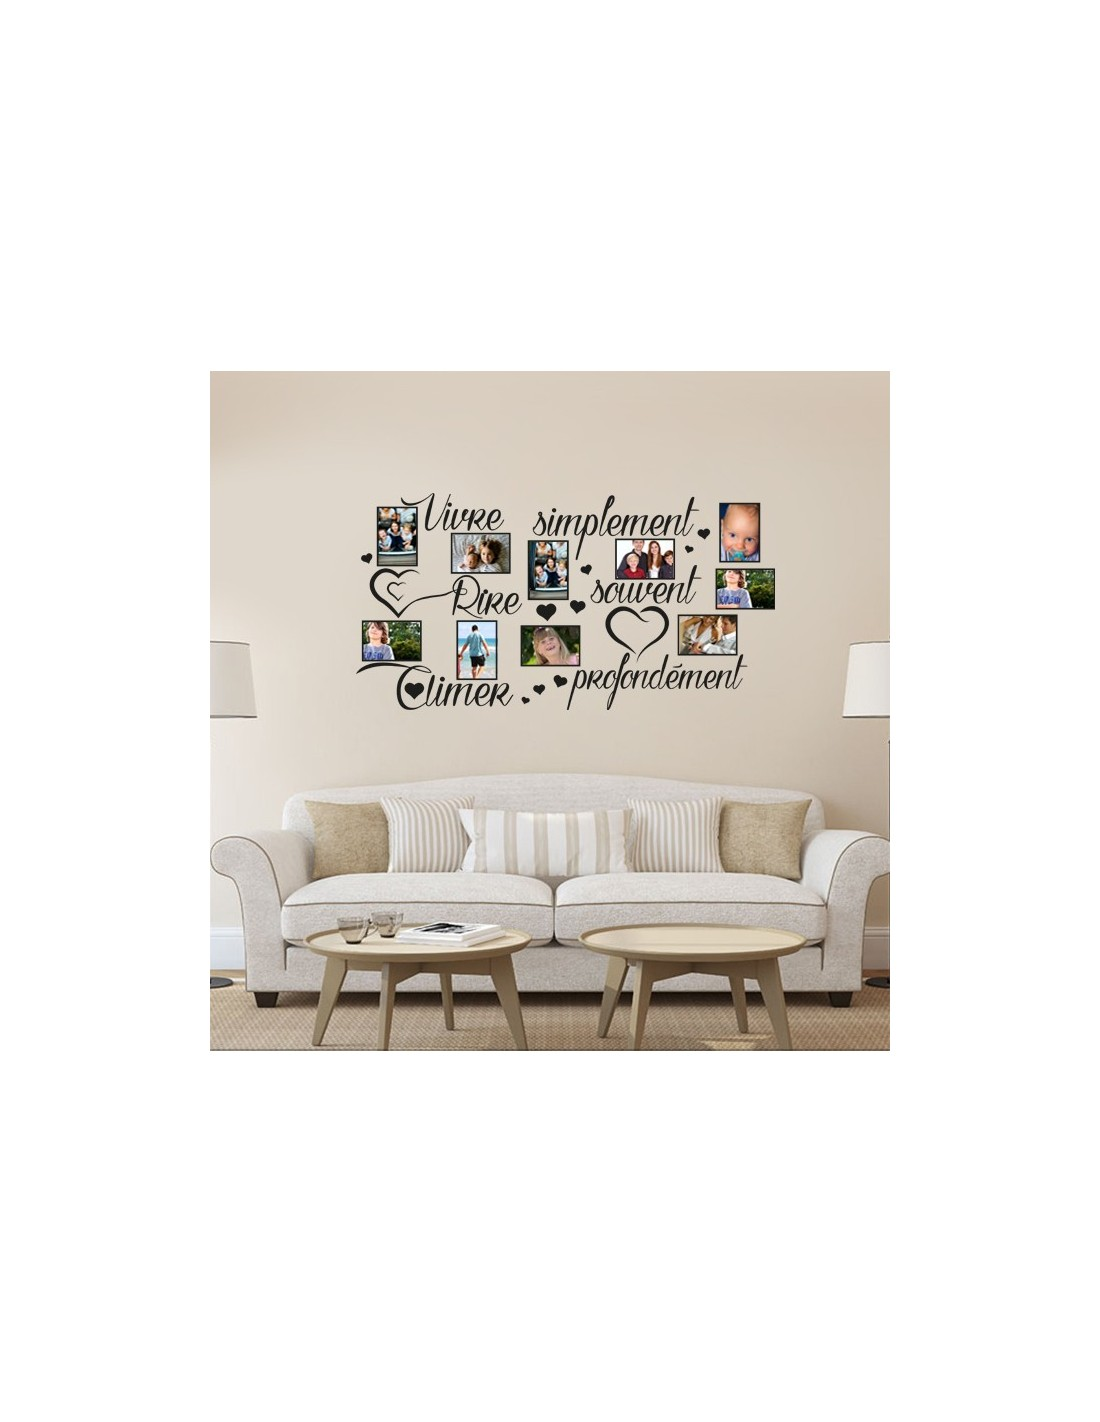 stickers d co mural cadre photos cadre photos amour. Black Bedroom Furniture Sets. Home Design Ideas